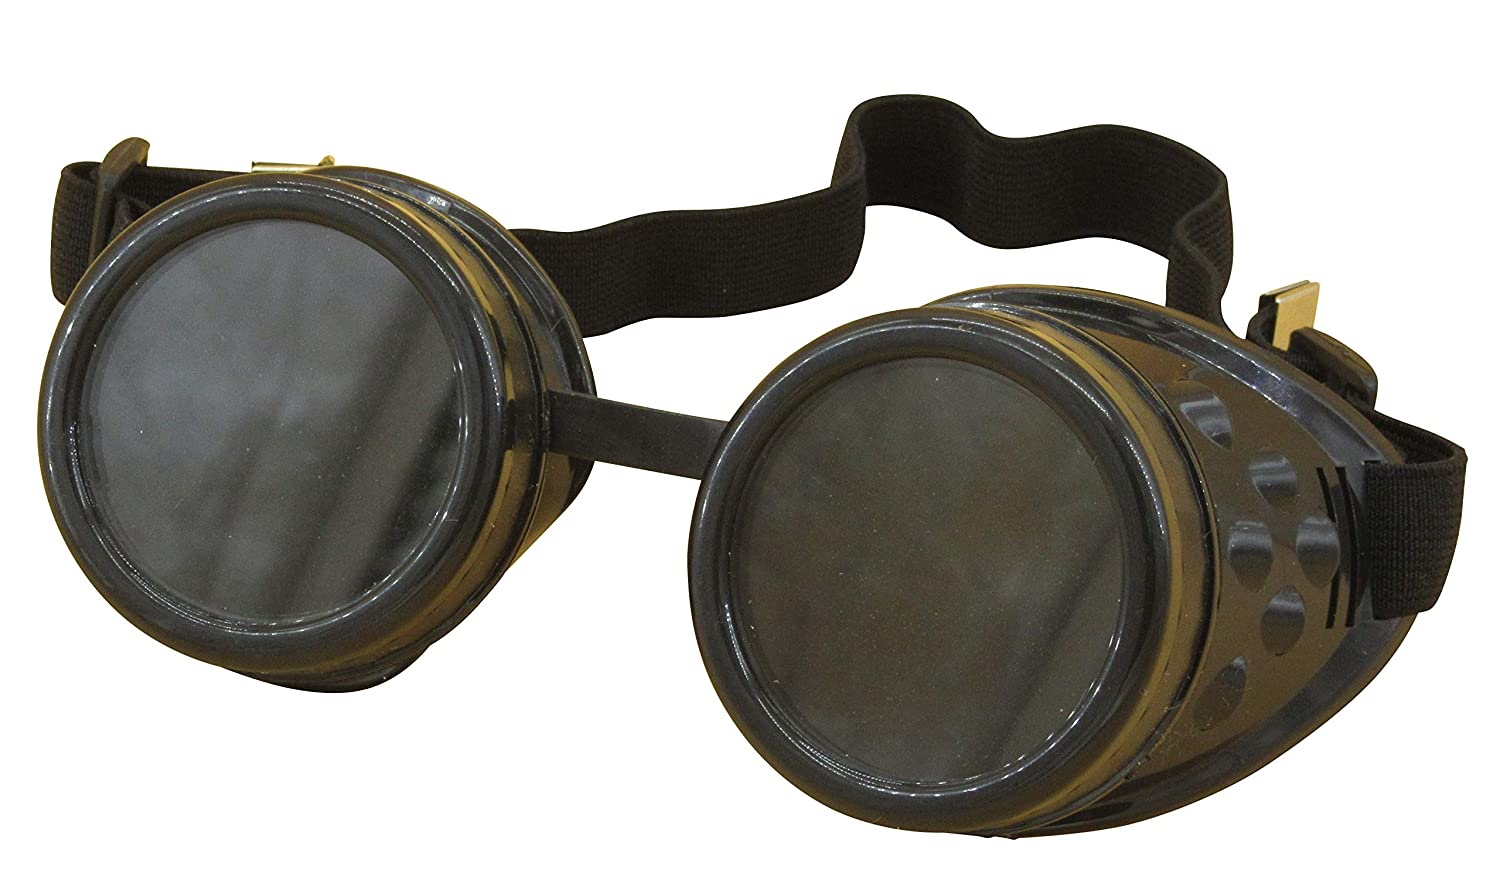 Yarizm Steampunk Goggles Cyber Welding Goth Cosplay Glasses